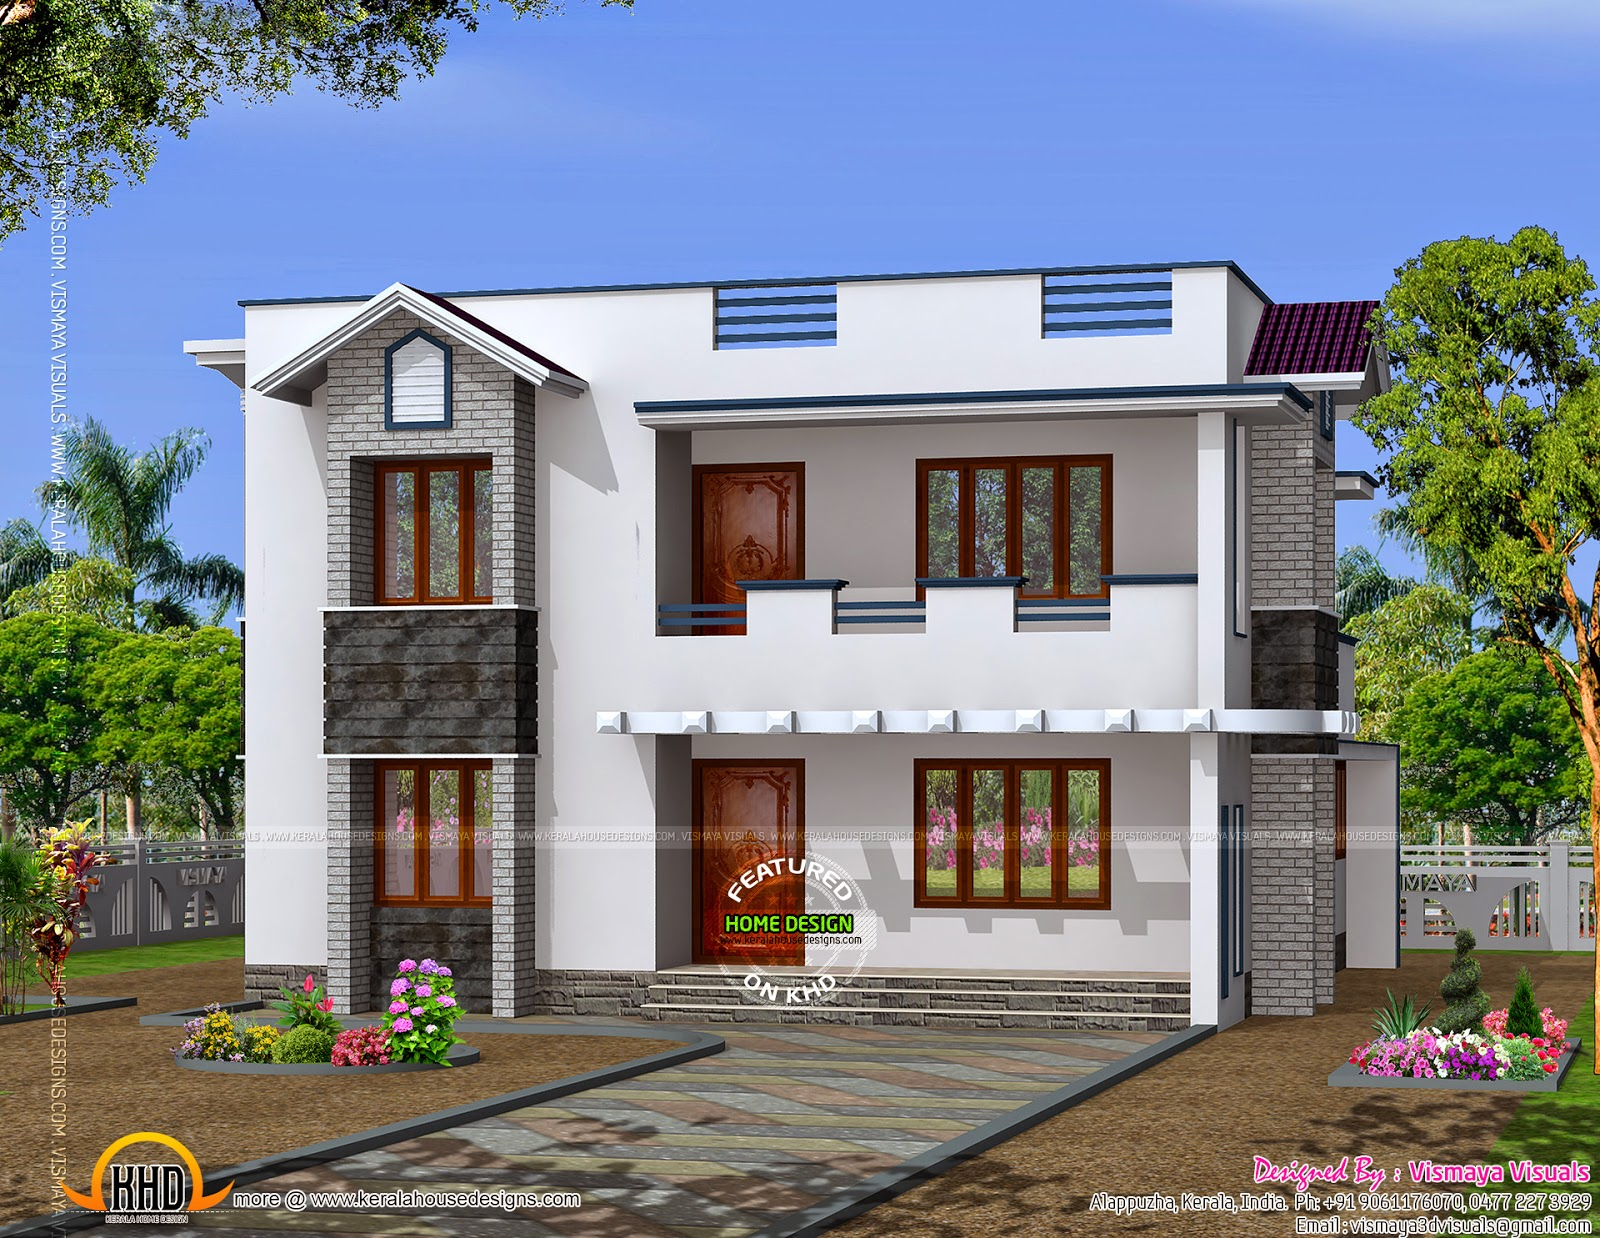 Simple design home kerala home design and floor plans for House designers house plans